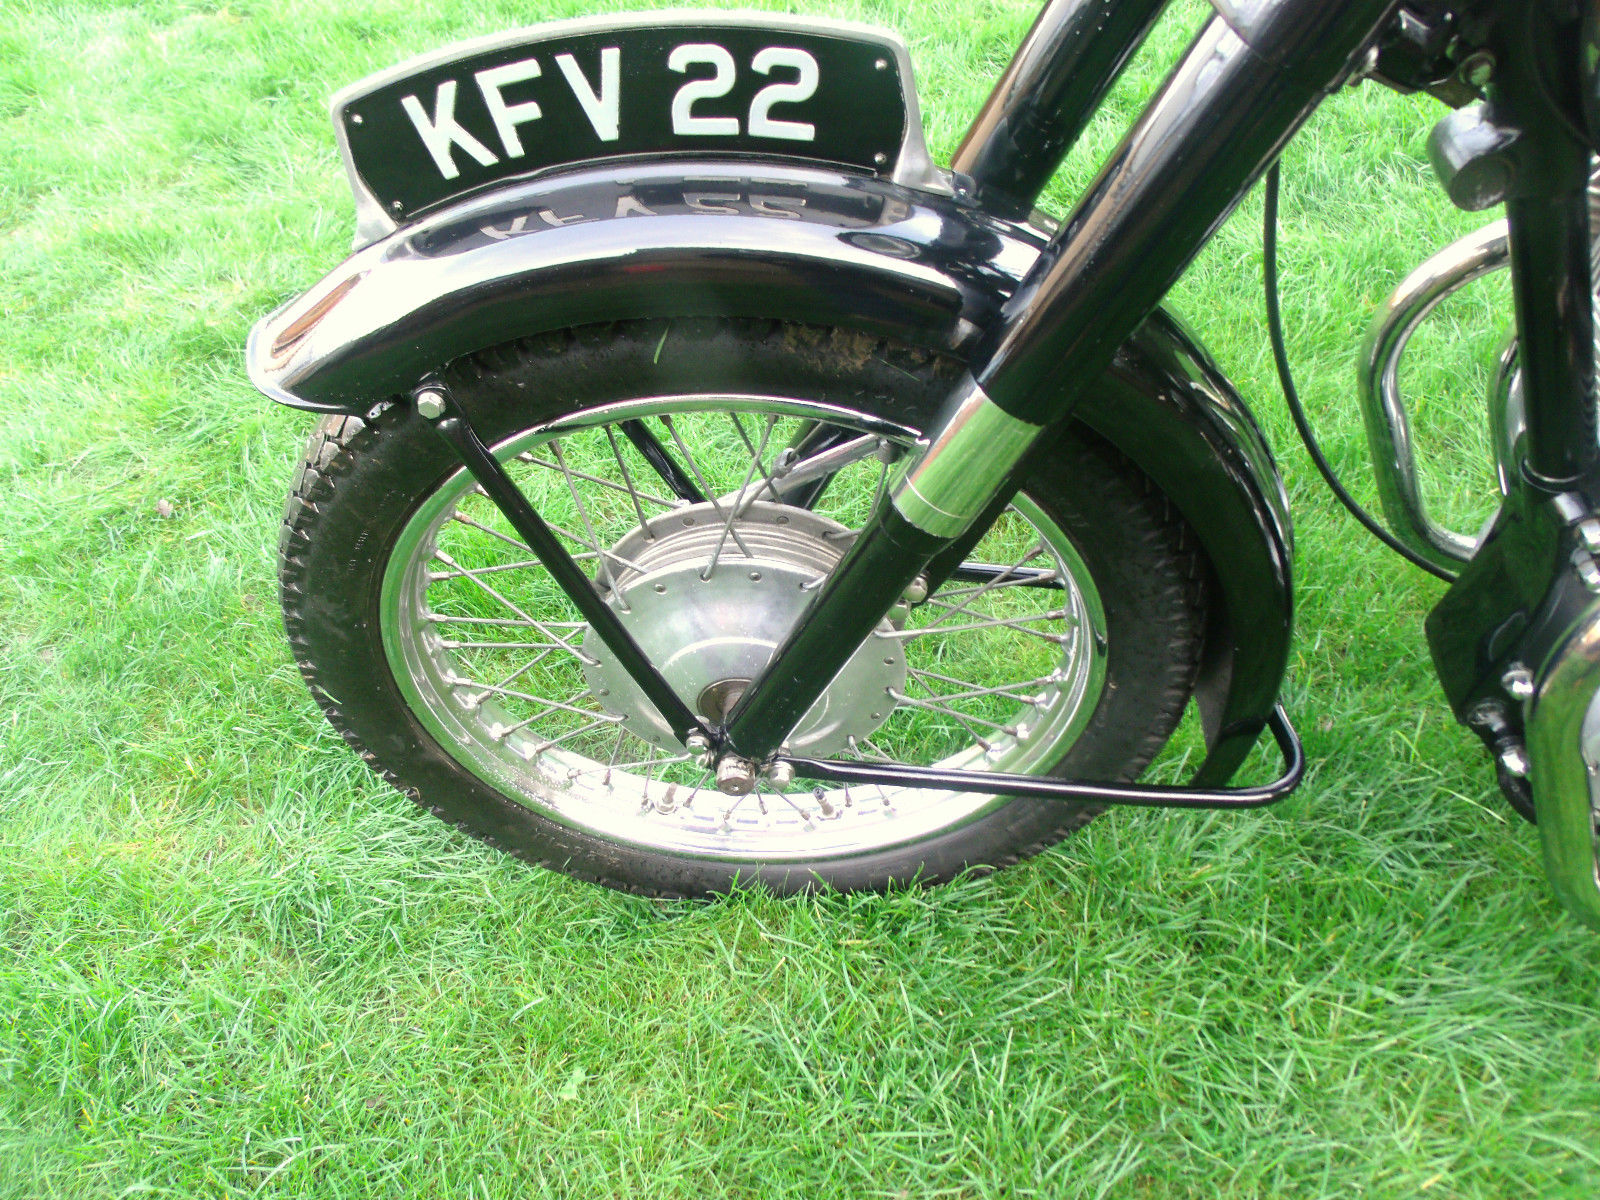 Ariel Square 4 - 1955 - Number Plate, Front Wheel, Front Hub and Fender.